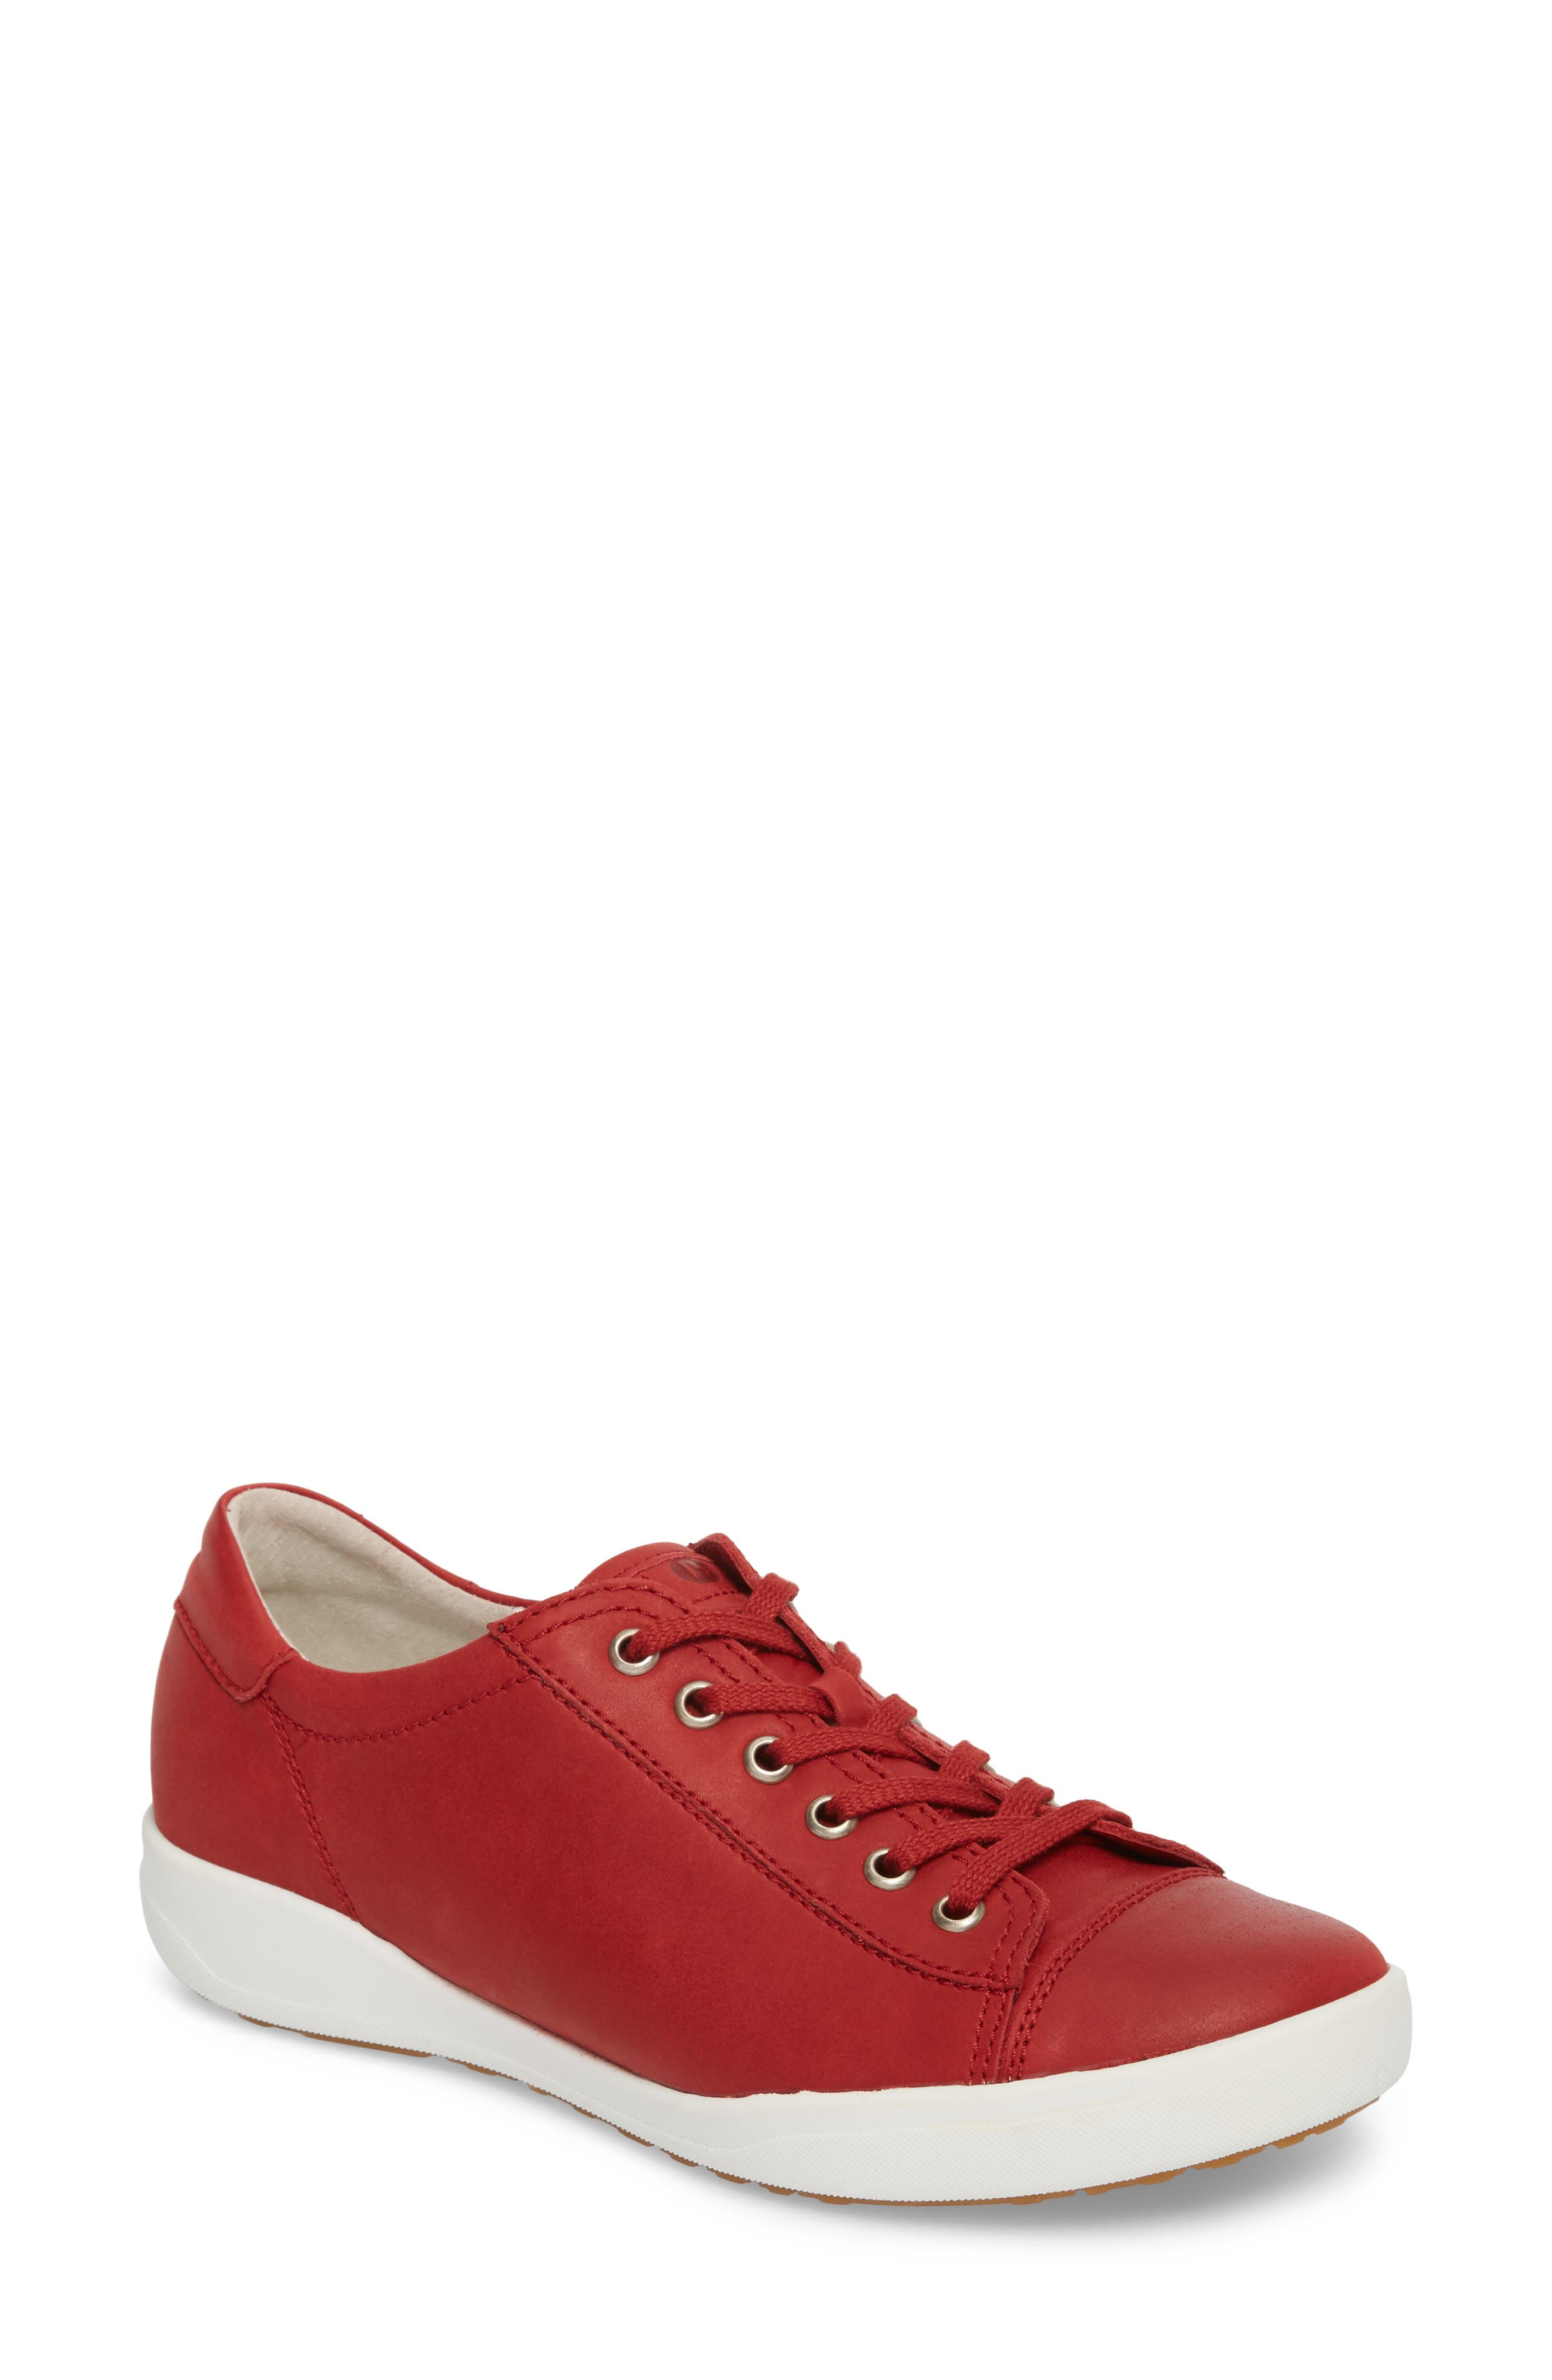 Sina 11 Sneaker,                             Main thumbnail 1, color,                             RED LEATHER 2